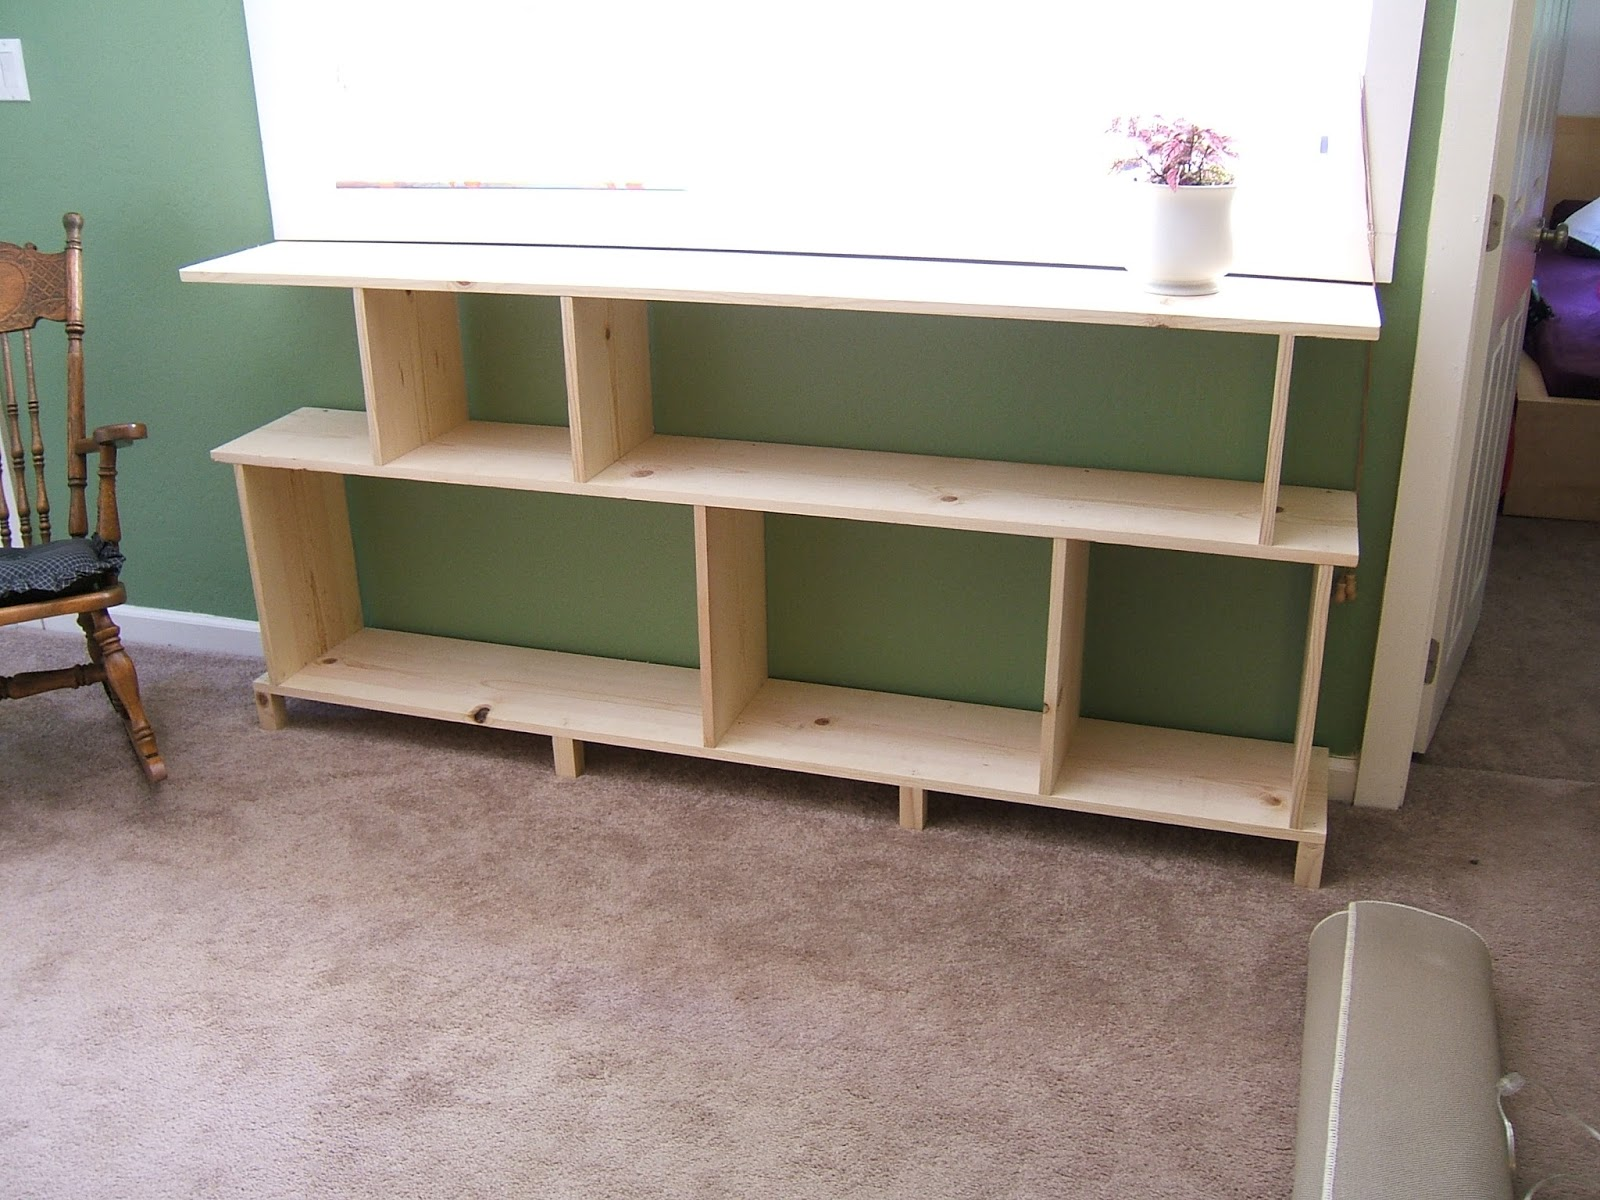 how to build a bookshelf step by step